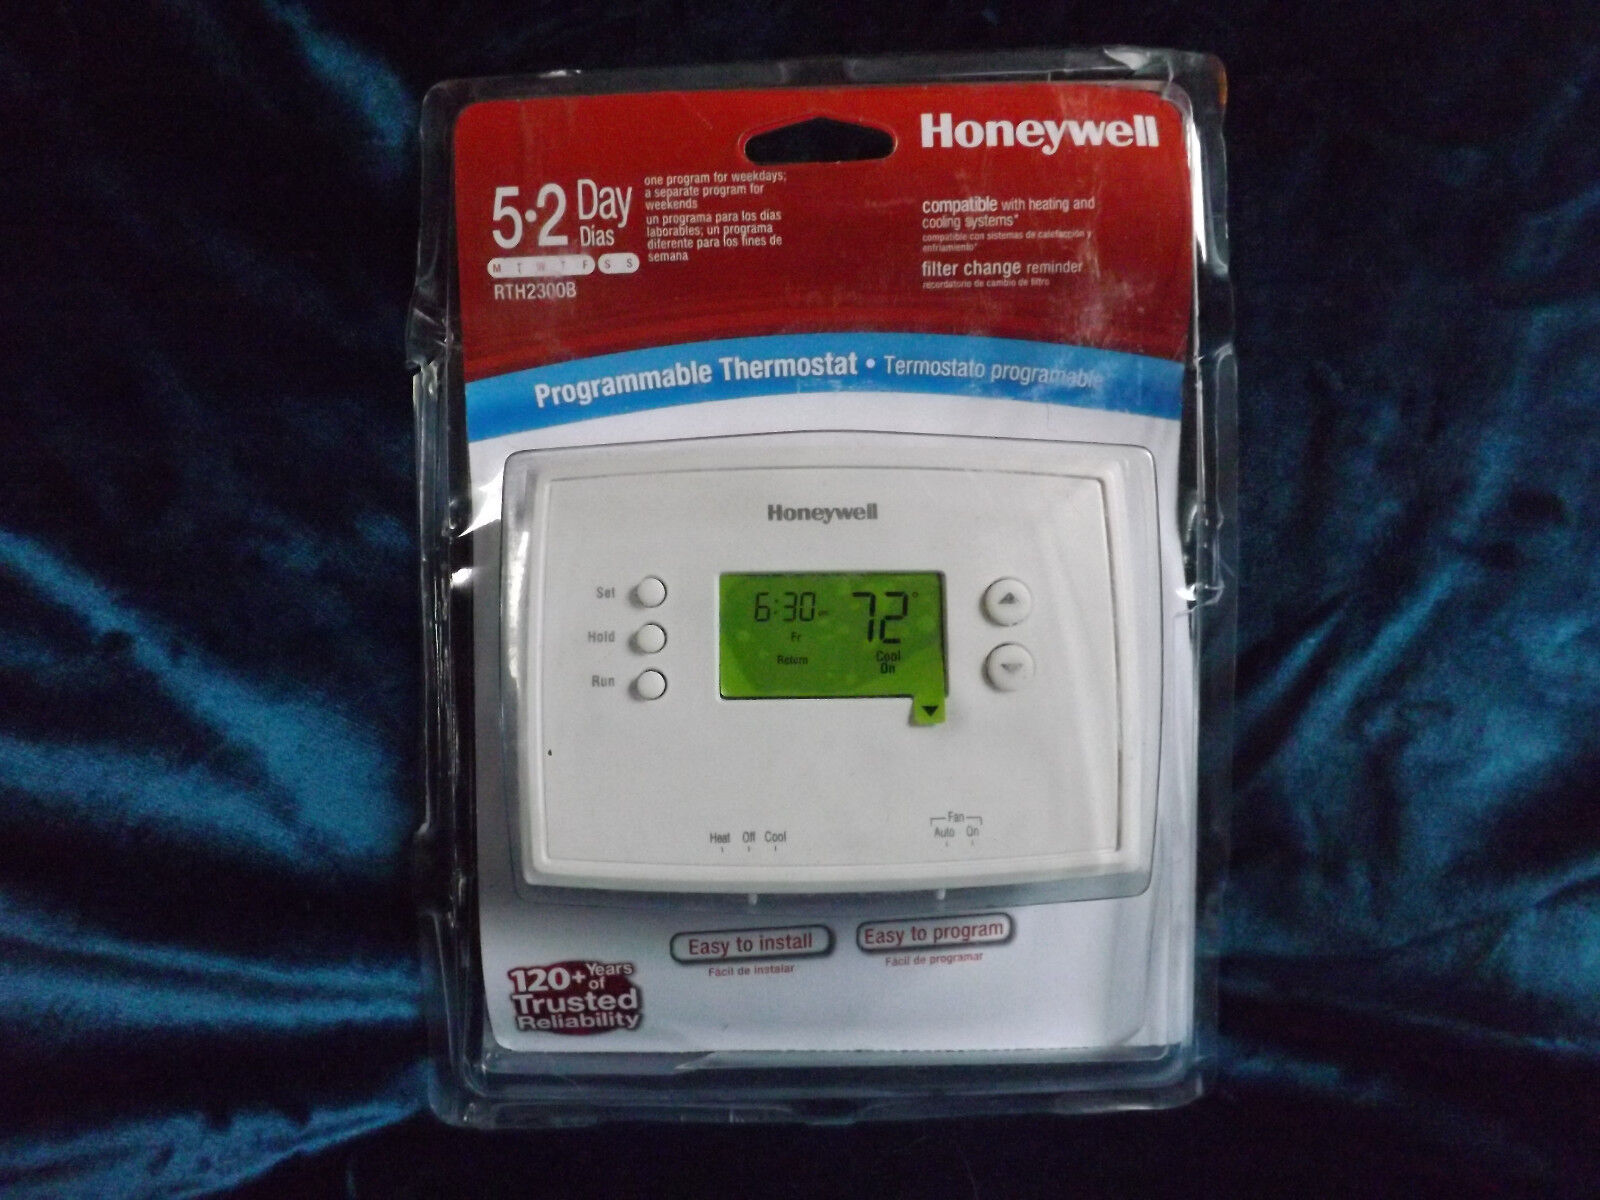 1 Honeywell Rth 2300 B Digital 5 2 Day Programmable Thermostat Green Wiring Diagram For Rth2300b Display